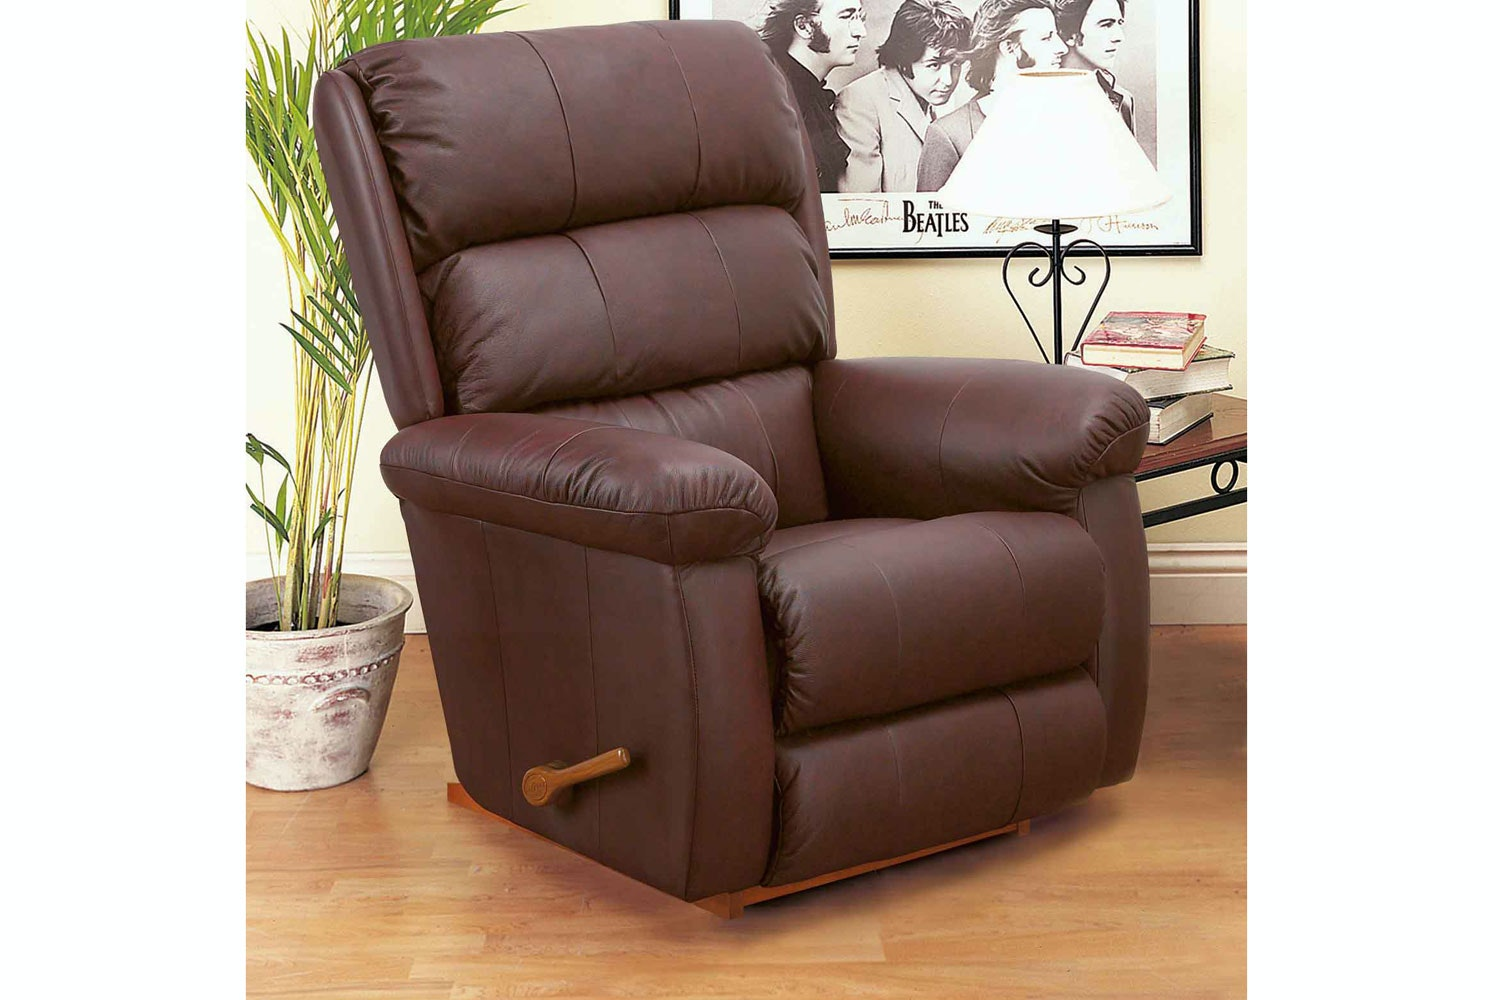 Rapids Leather La-Z-Boy® Recliner Chair